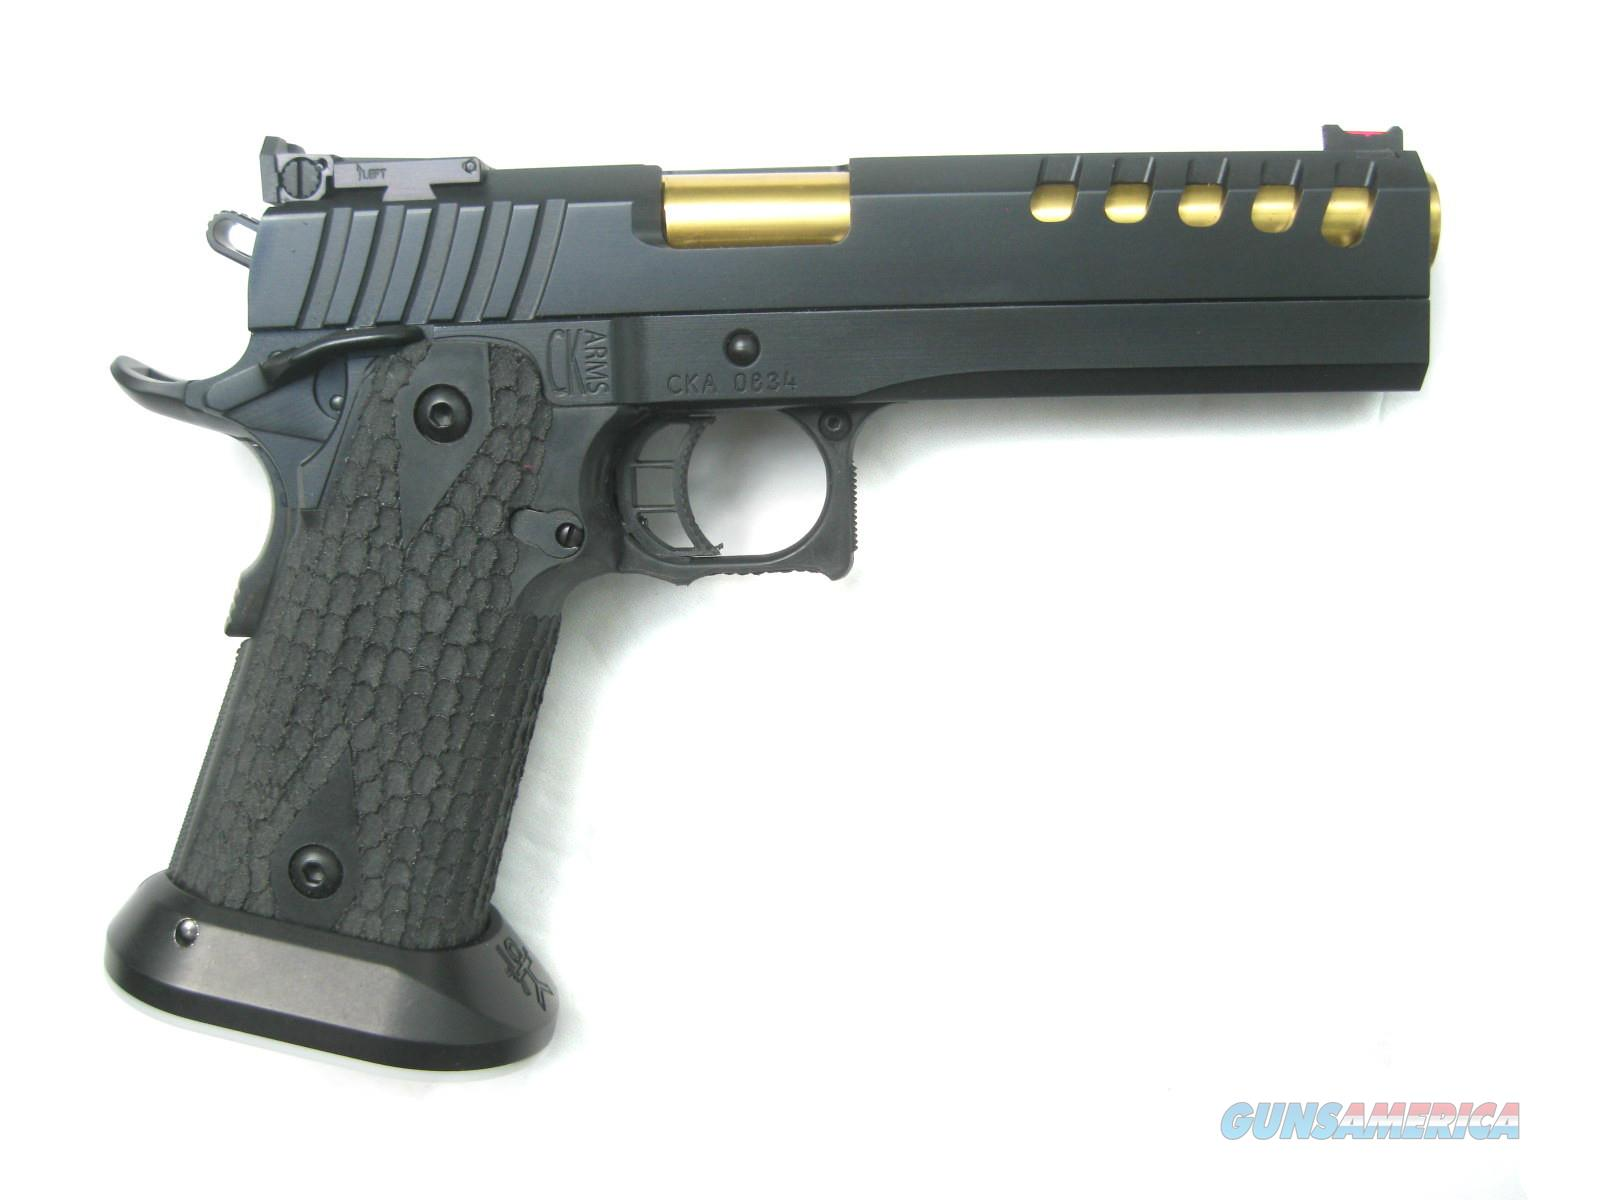 CK Arms Custom Thunder Series LIMITED .40 S&W Black PVD Tri-Top Lightened Slide FO *NEW*  Guns > Pistols > 1911 Pistol Copies (non-Colt)